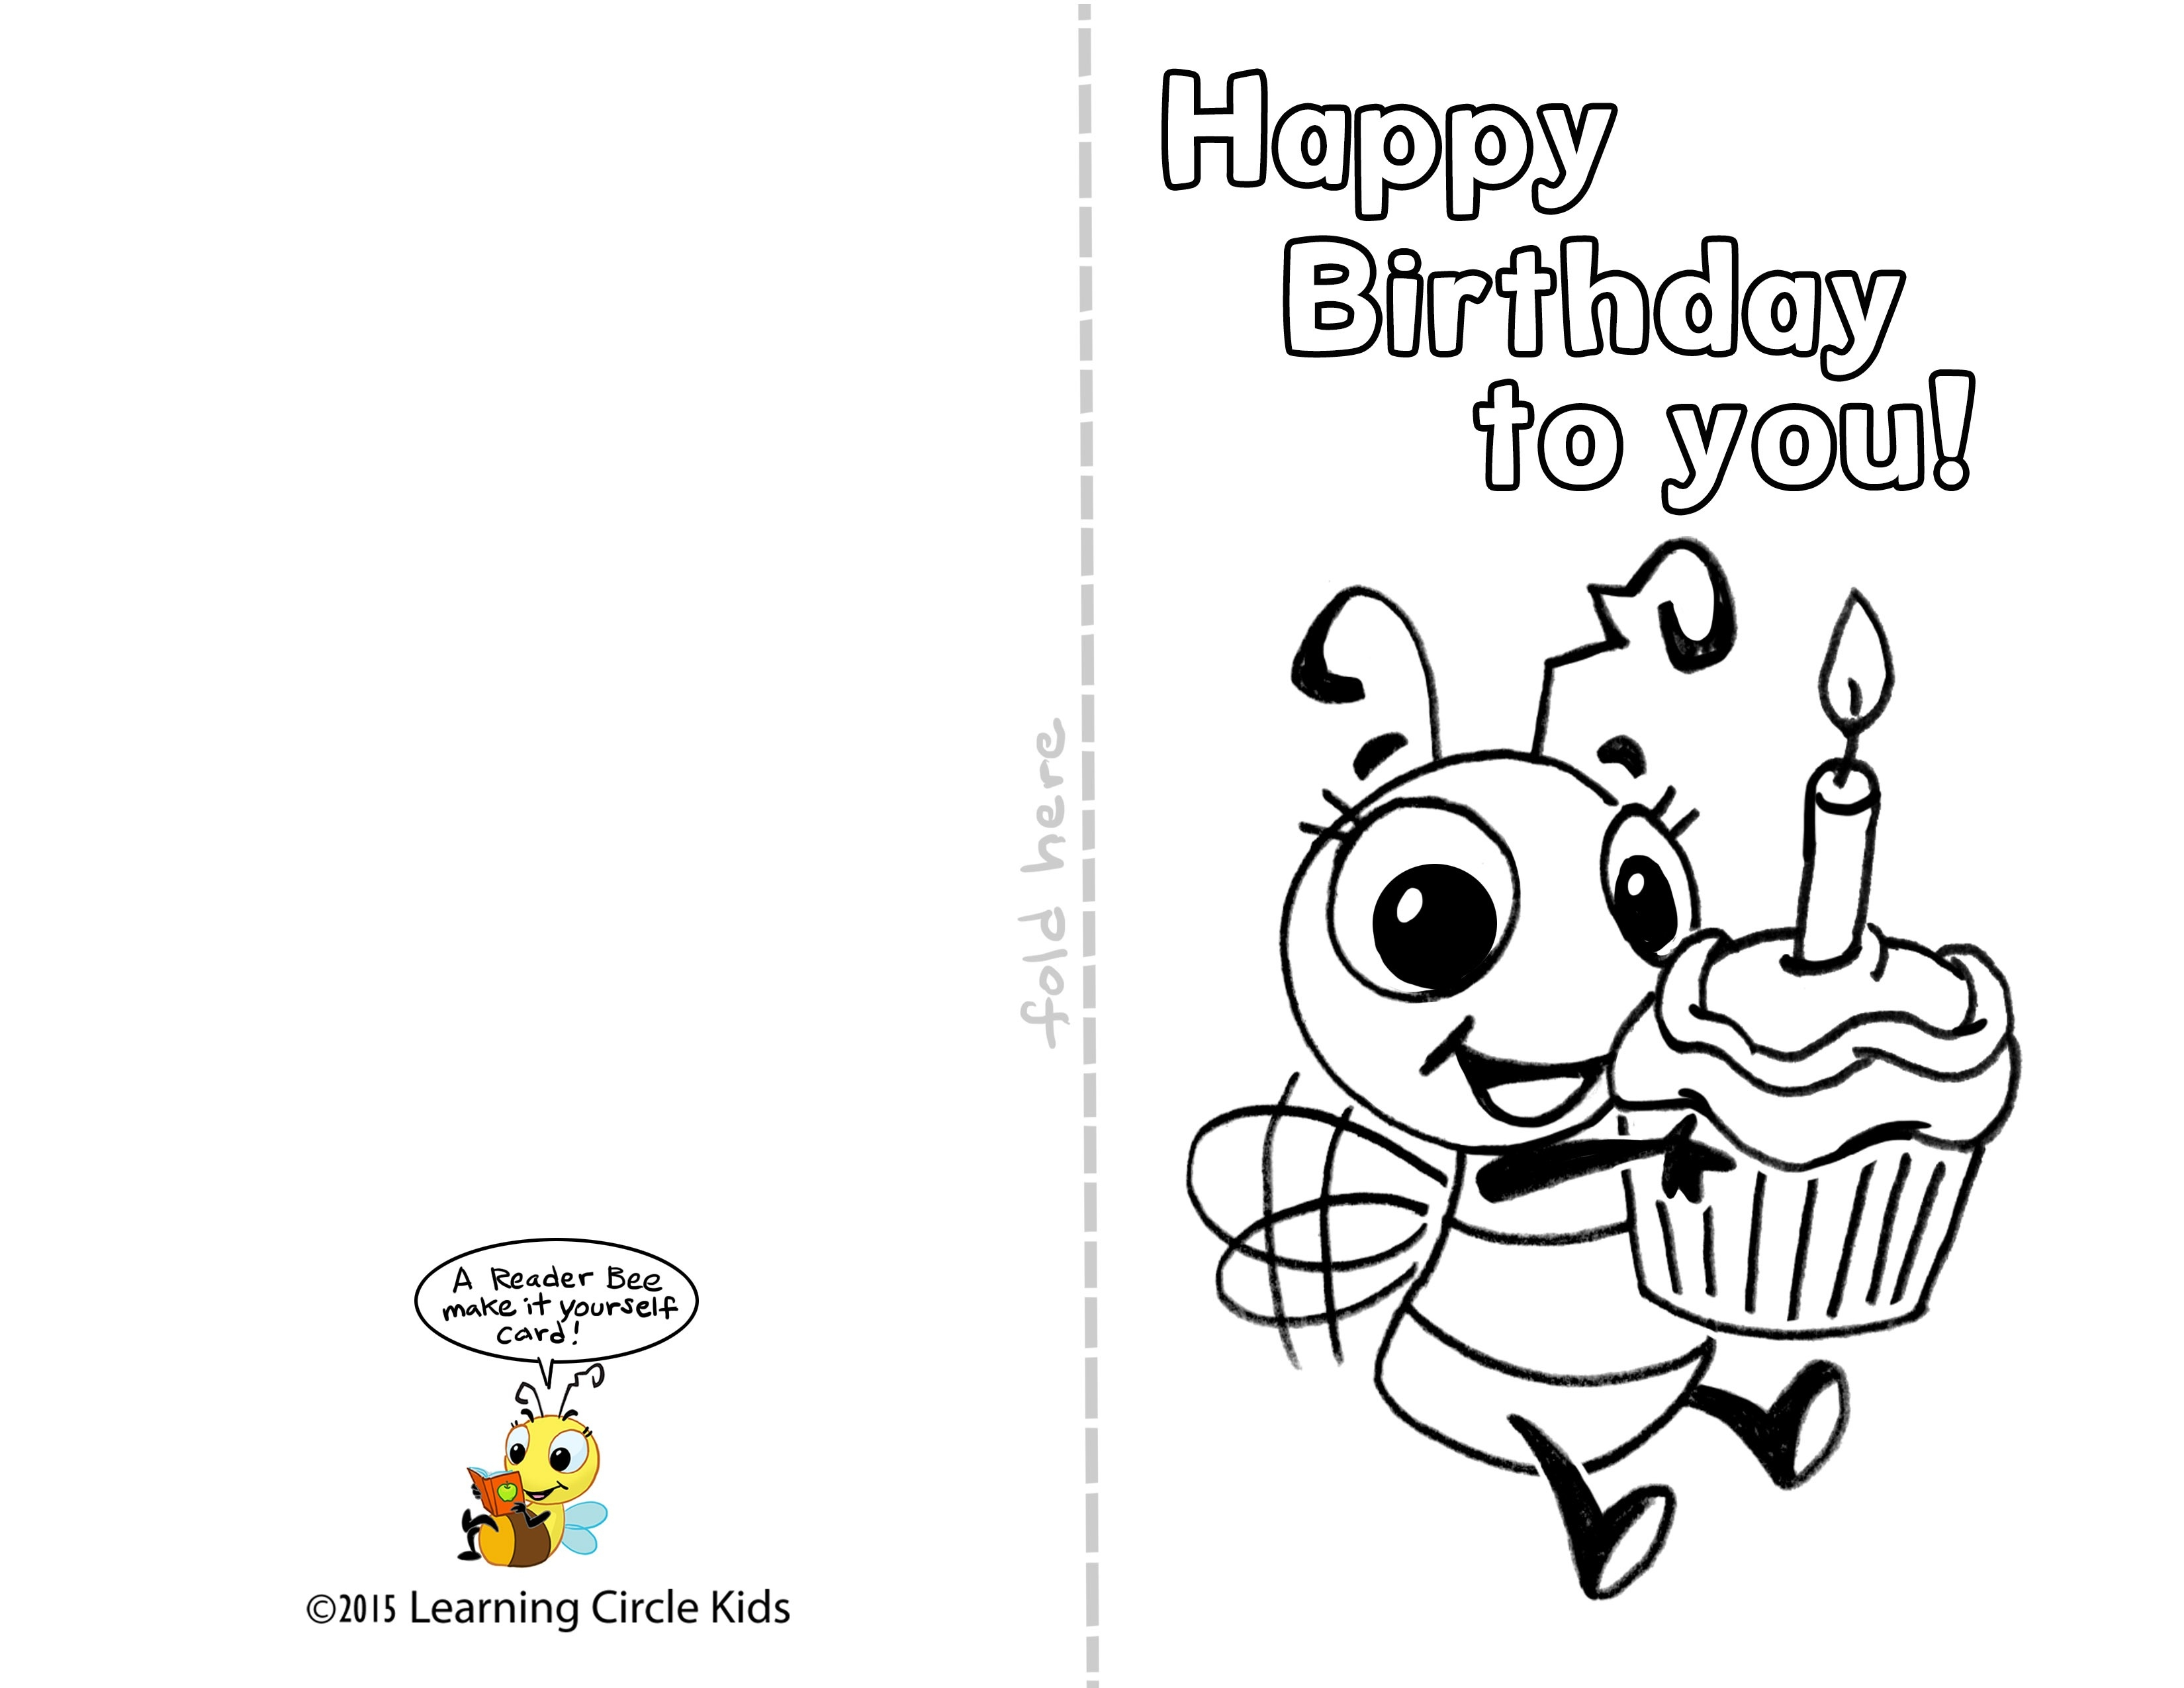 off color birthday cards ; black-and-white-birthday-cards-printable-hatch-urbanskript-co-for-printable-birthday-cards-black-and-white